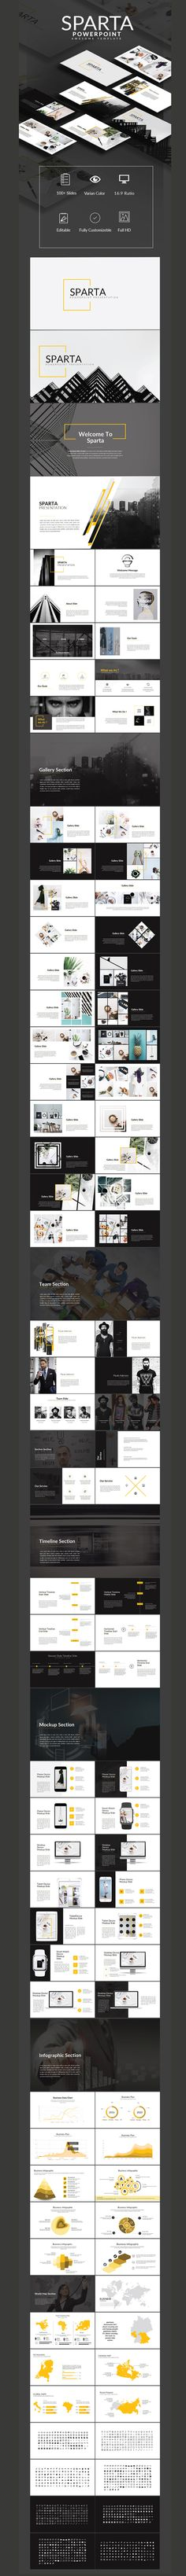 Sparta Powerpoint Multipurpose Presentation Template